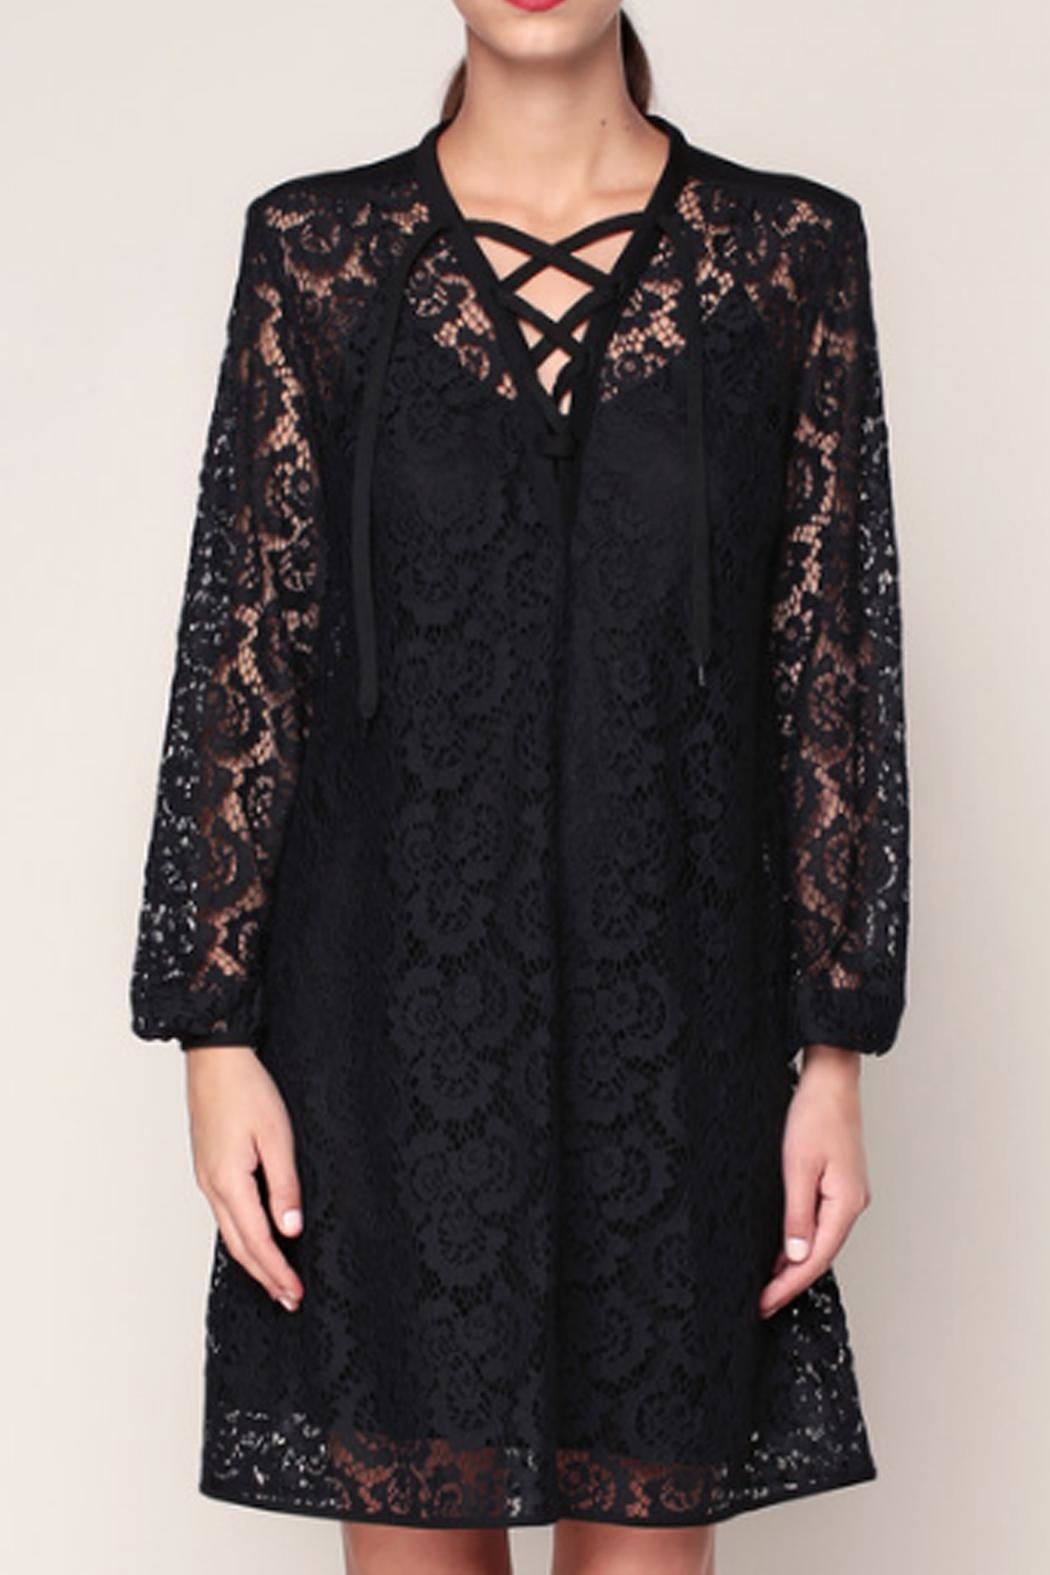 Sonia by Sonia Rykiel Black Lace Dress - Front Full Image